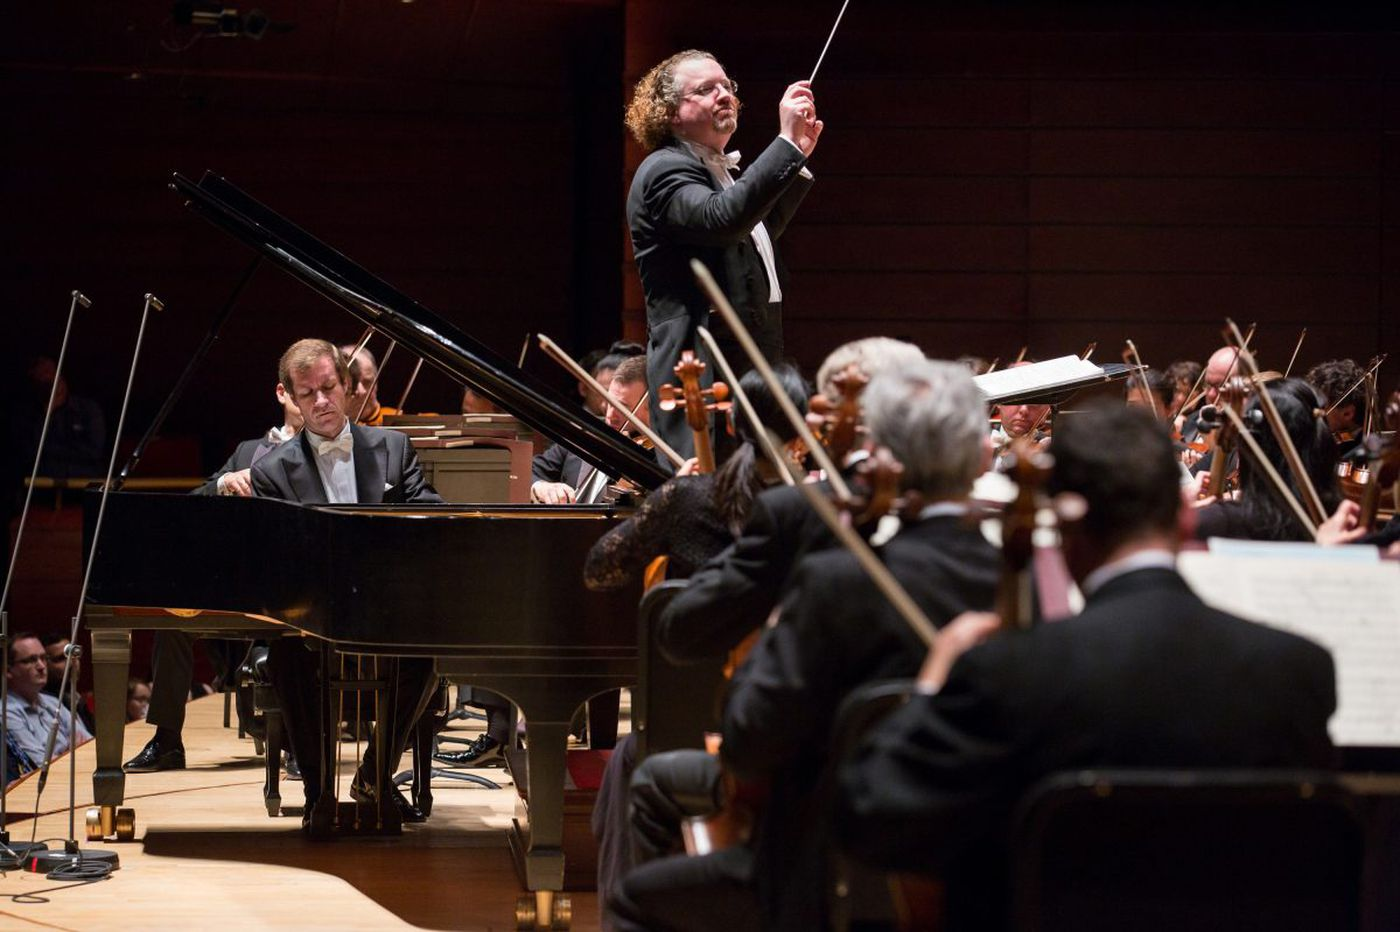 No hard feelings: Philadelphia Orchestra musicians give $74K to help employer reach fund goal